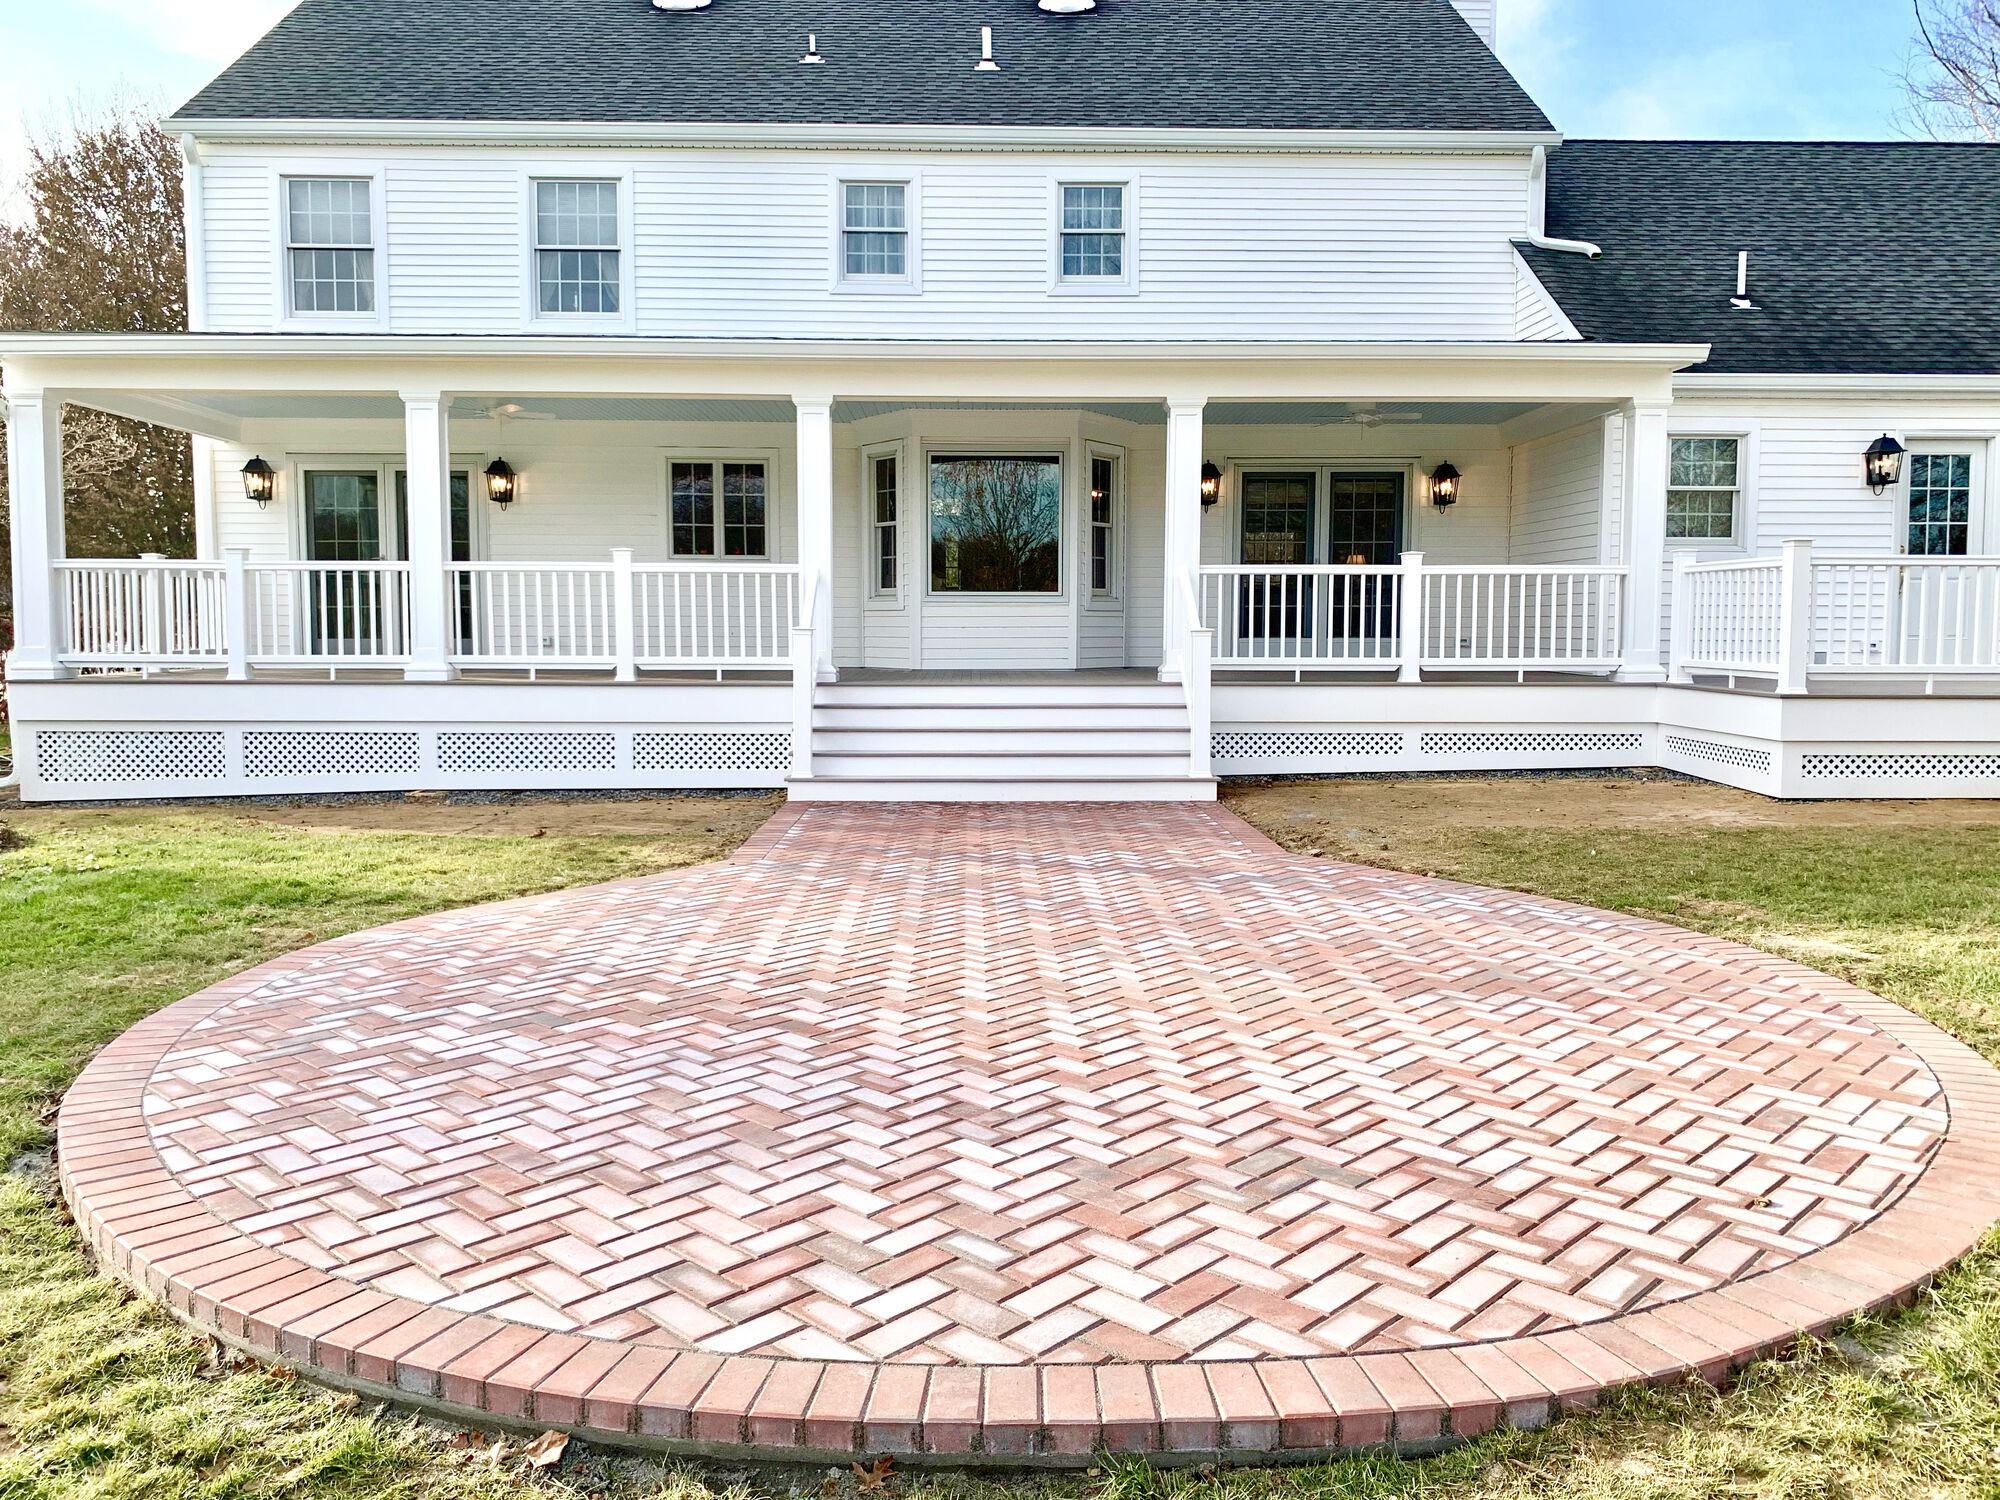 Covered Porch Addition with Azek Timbertech Composite Grooved Porched Flooring, Composite Posts _ Rails and Cambridge Paver Patio in Washington, Warren County NJ